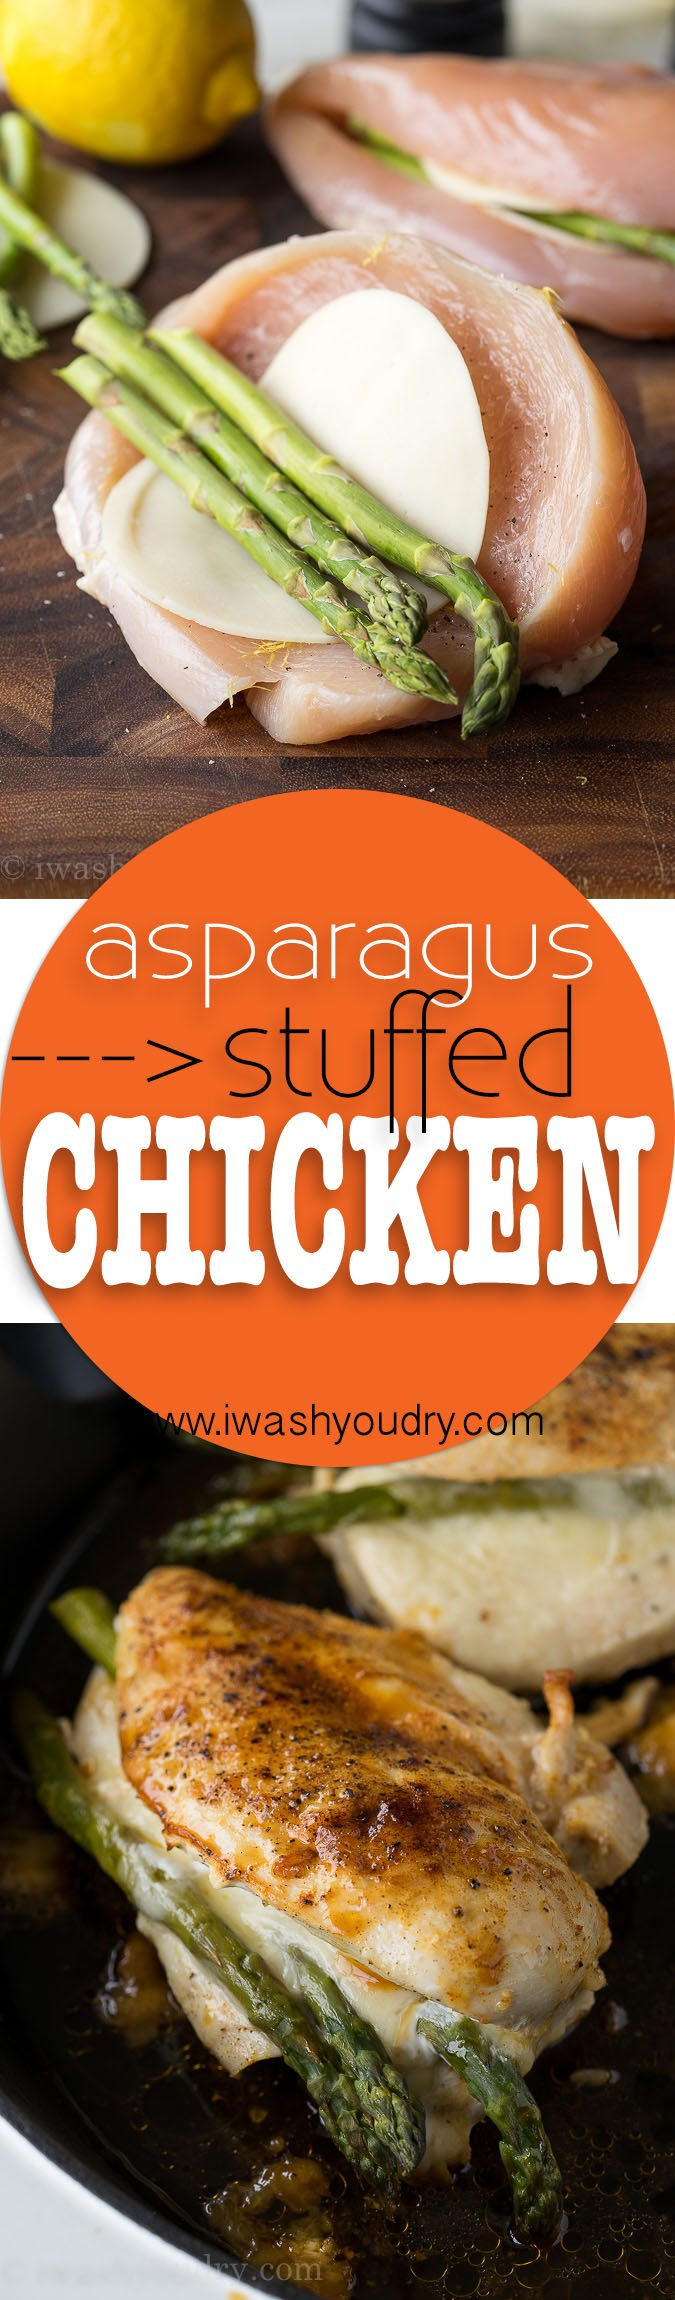 I Love How Quickly This Asparagus Stuffed Chicken Breastes Together!  It's Quickly Seared In